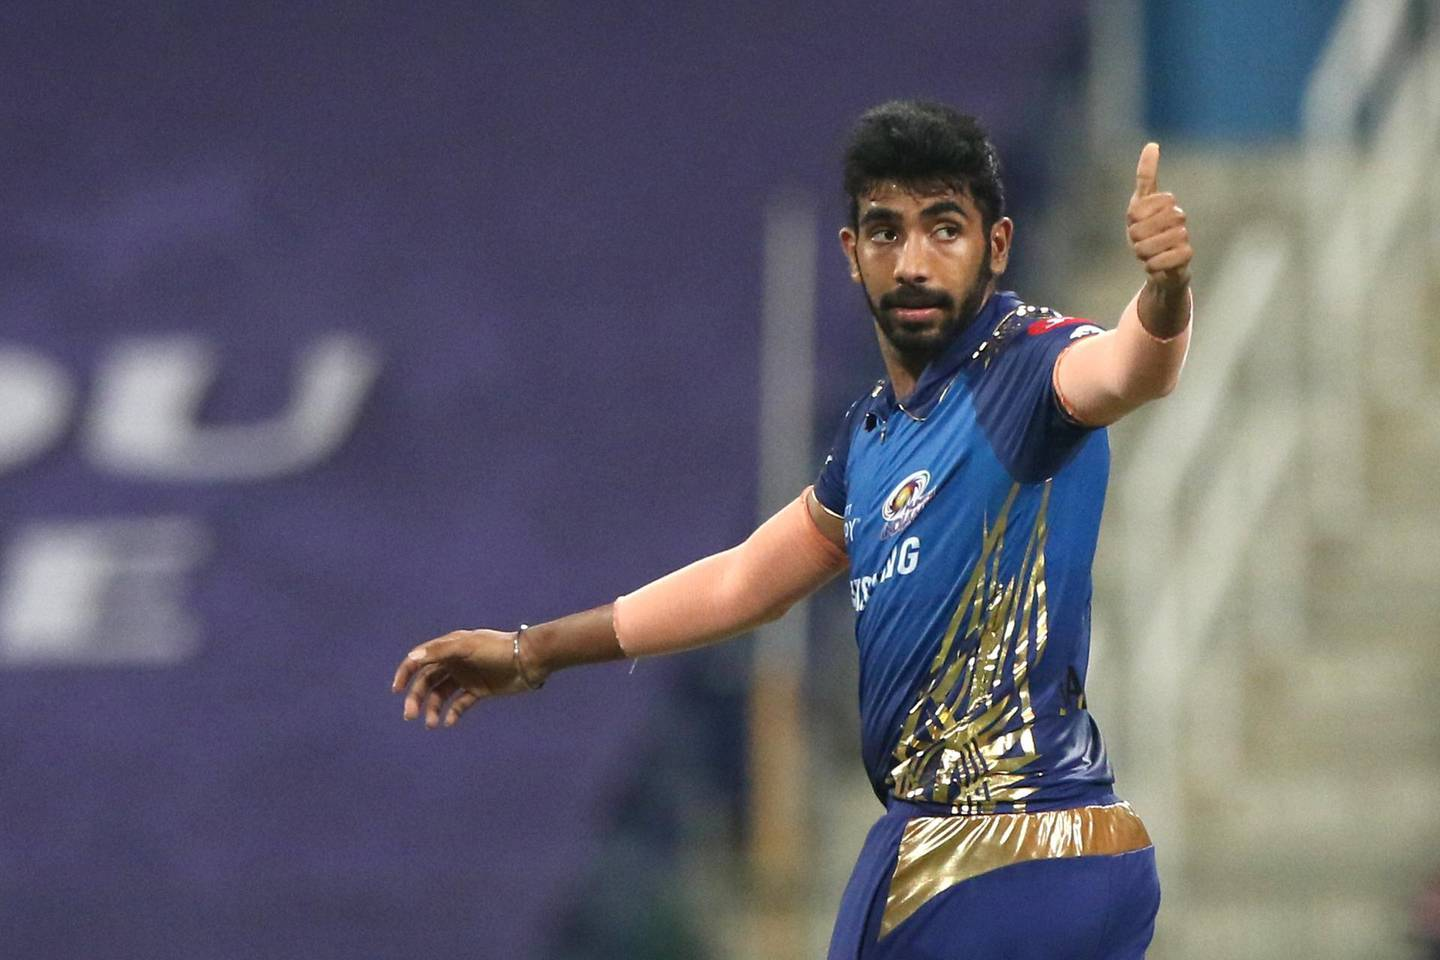 Jasprit Bumrah of Mumbai Indians  celebrates the wicket of Shreyas Gopal of Rajasthan Royals during match 20 of season 13 of the Dream 11 Indian Premier League (IPL) between the Mumbai Indians and the Rajasthan Royals at the Sheikh Zayed Stadium, Abu Dhabi  in the United Arab Emirates on the 6th October 2020.  Photo by: Pankaj Nangia  / Sportzpics for BCCI